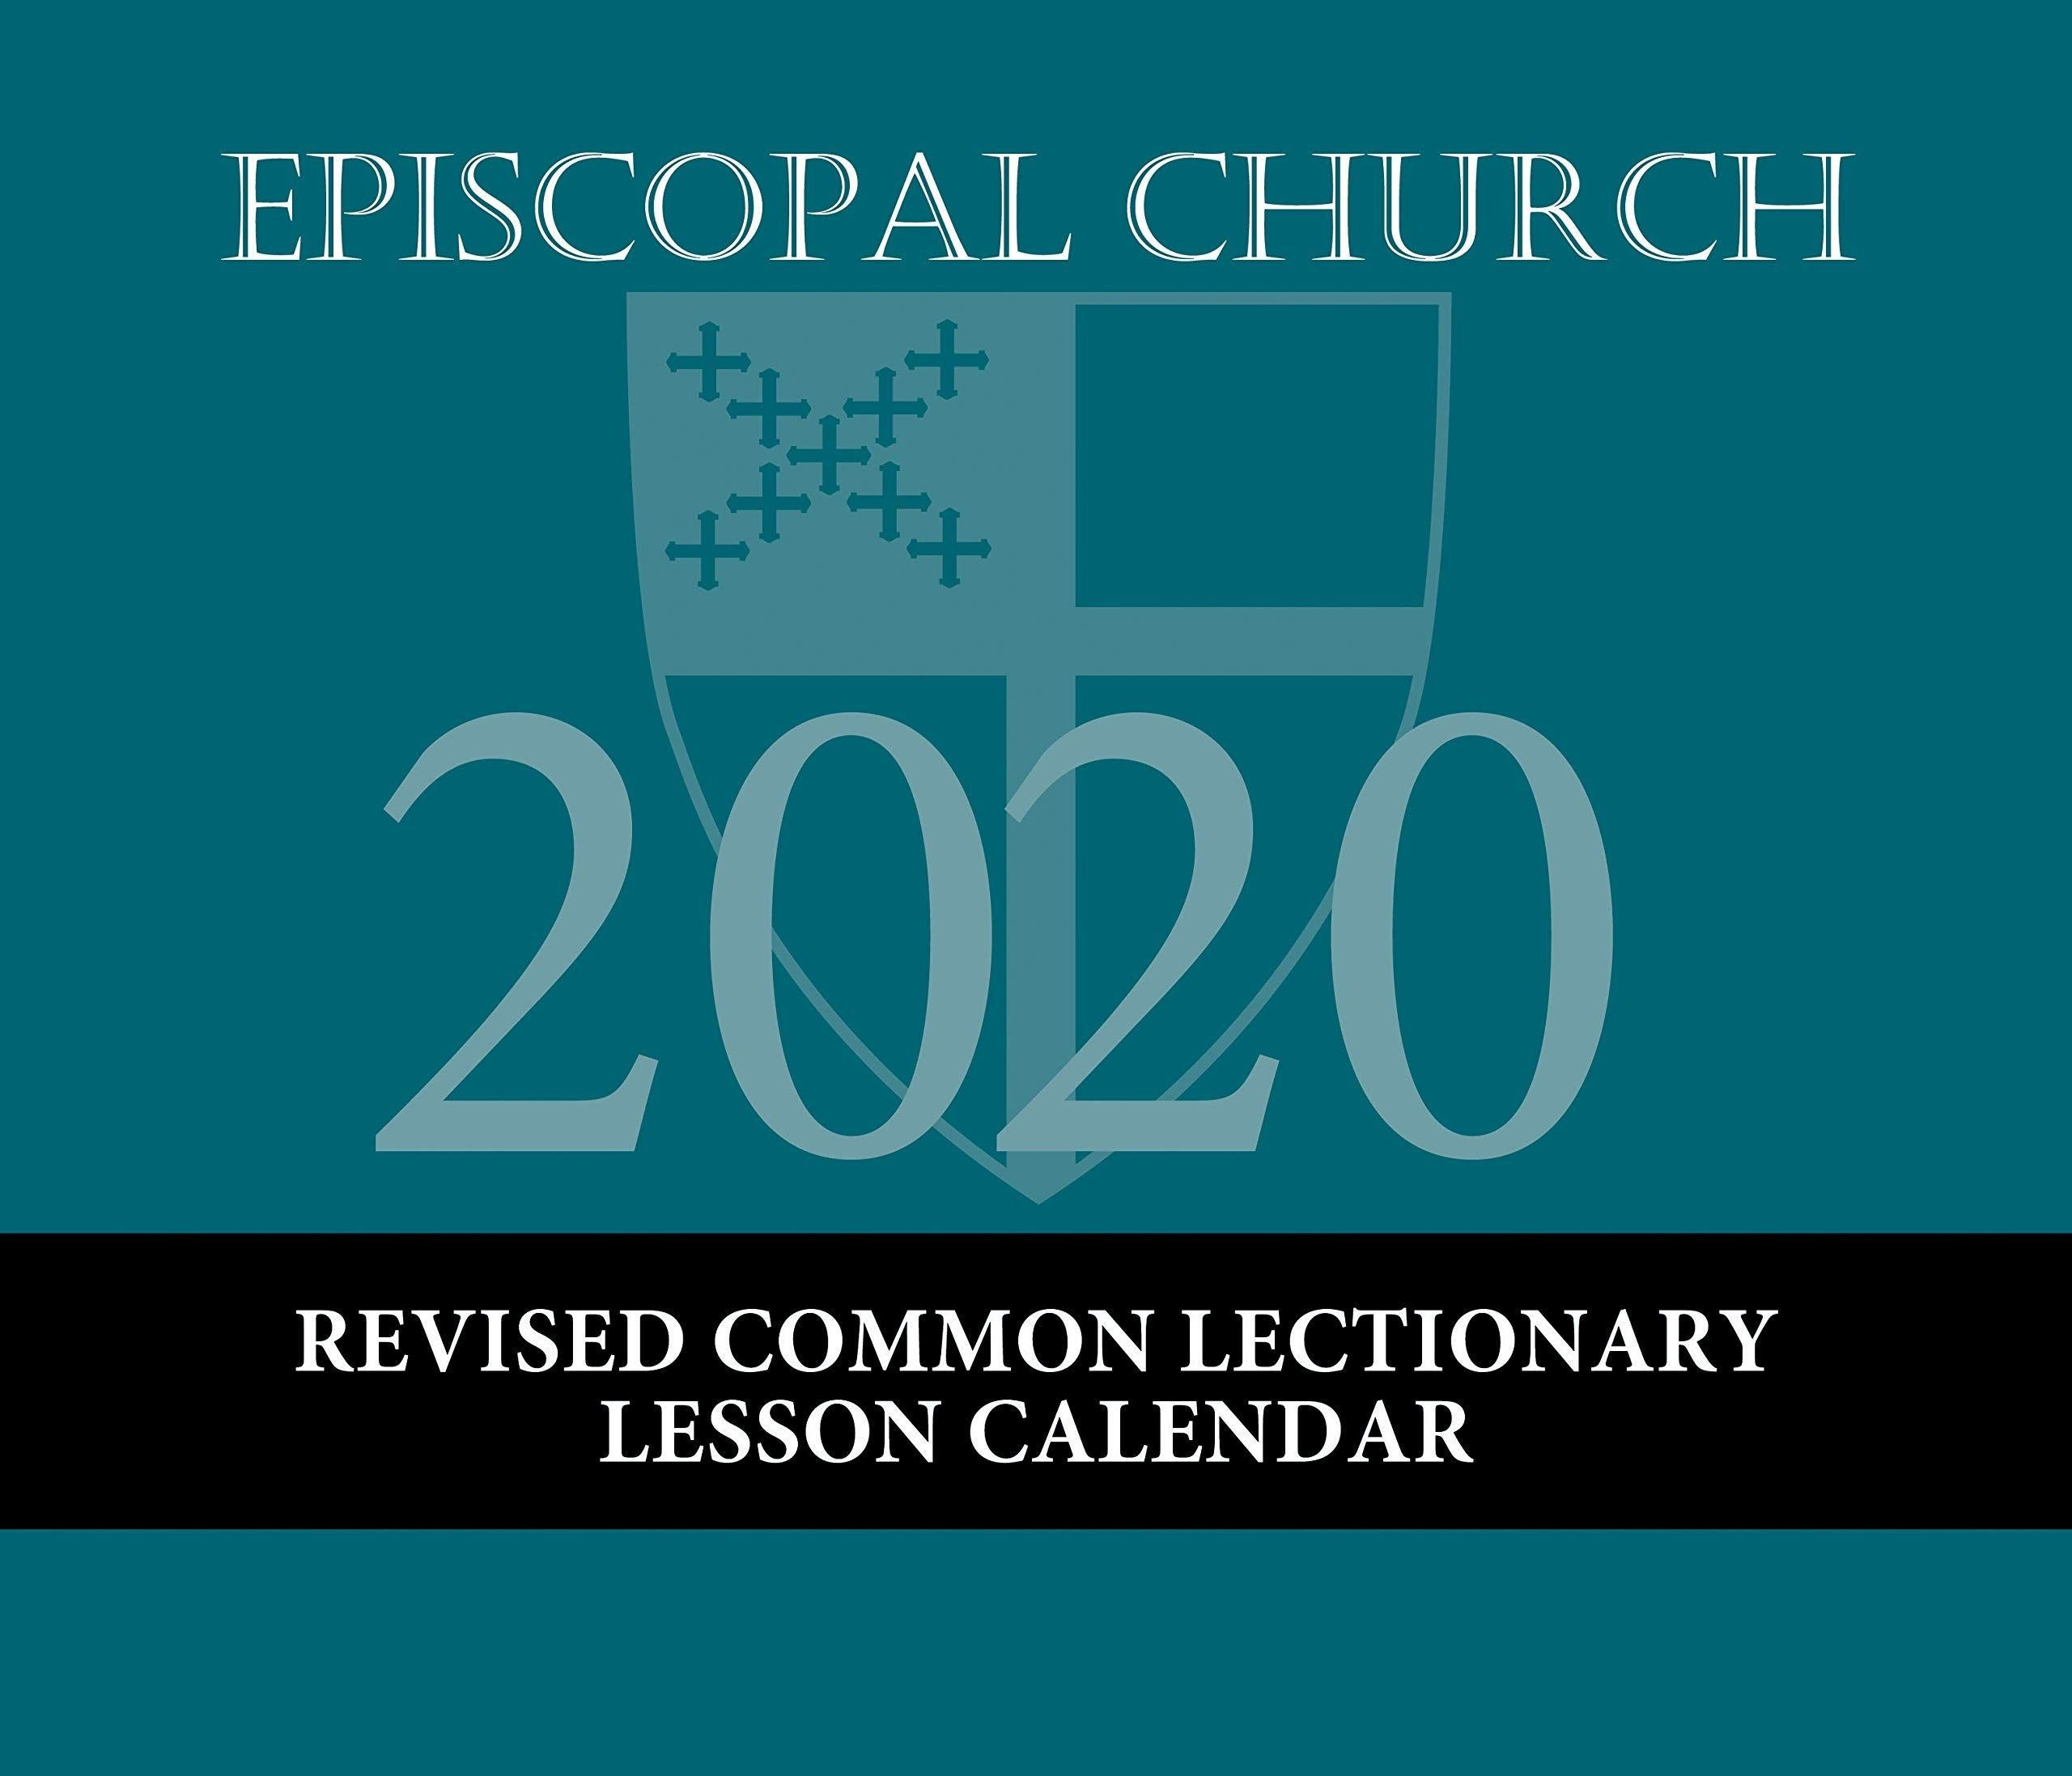 Episcopal Church Lesson Calendar Rcl 2020: December 2019 To  Revised Common Lectionary 2020